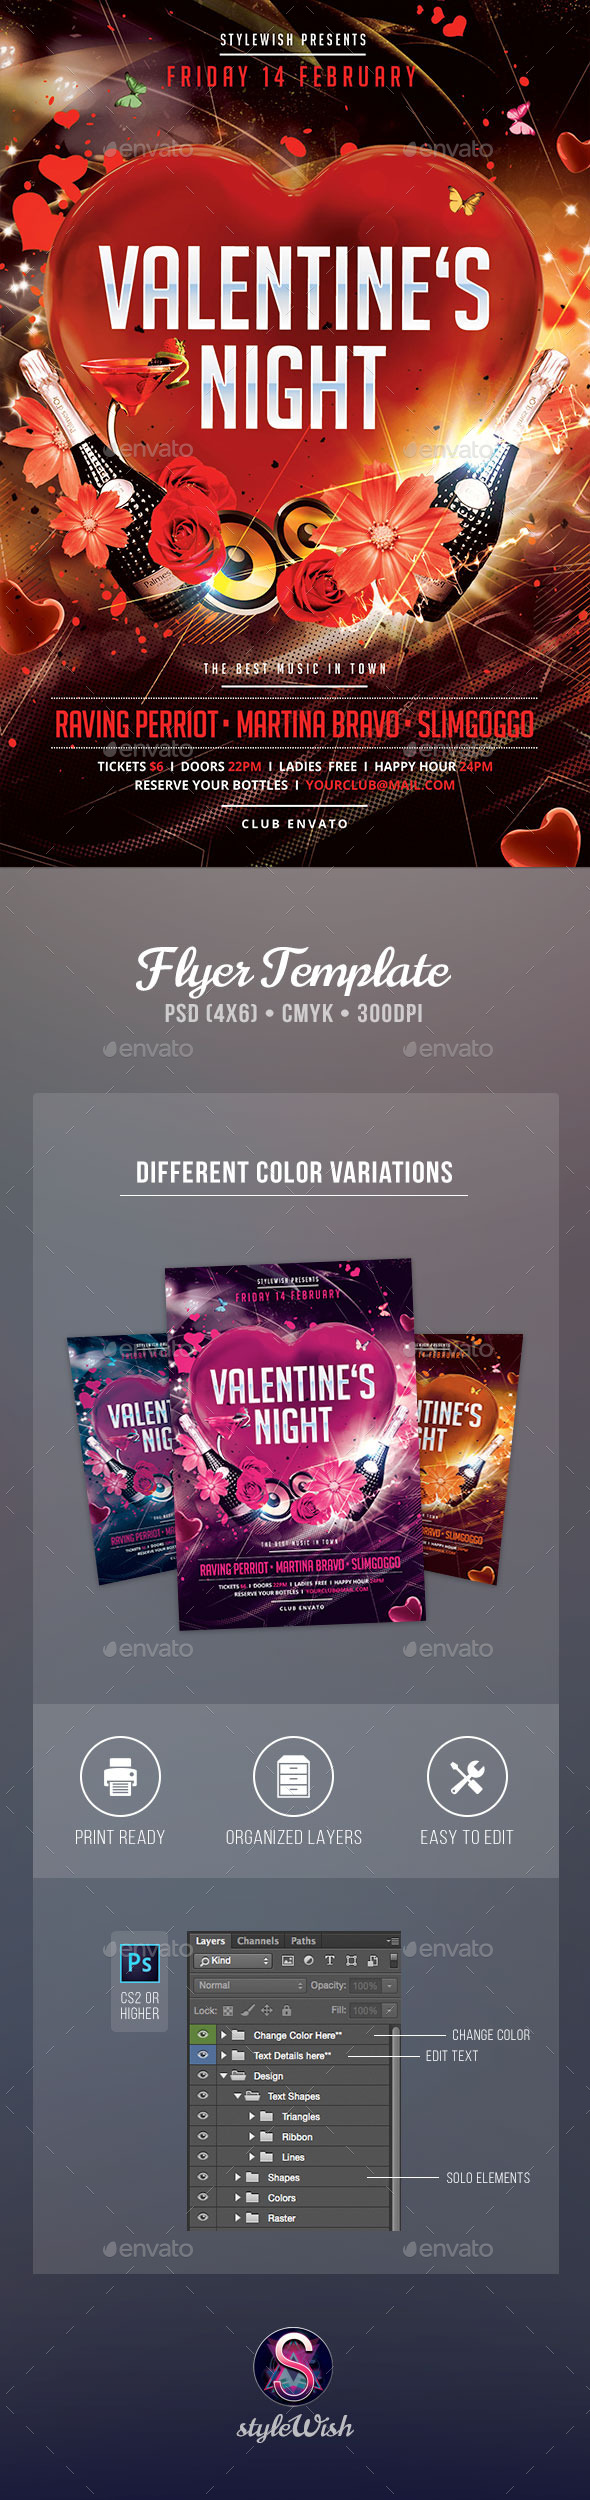 Valentines Night Flyer - Clubs & Parties Events